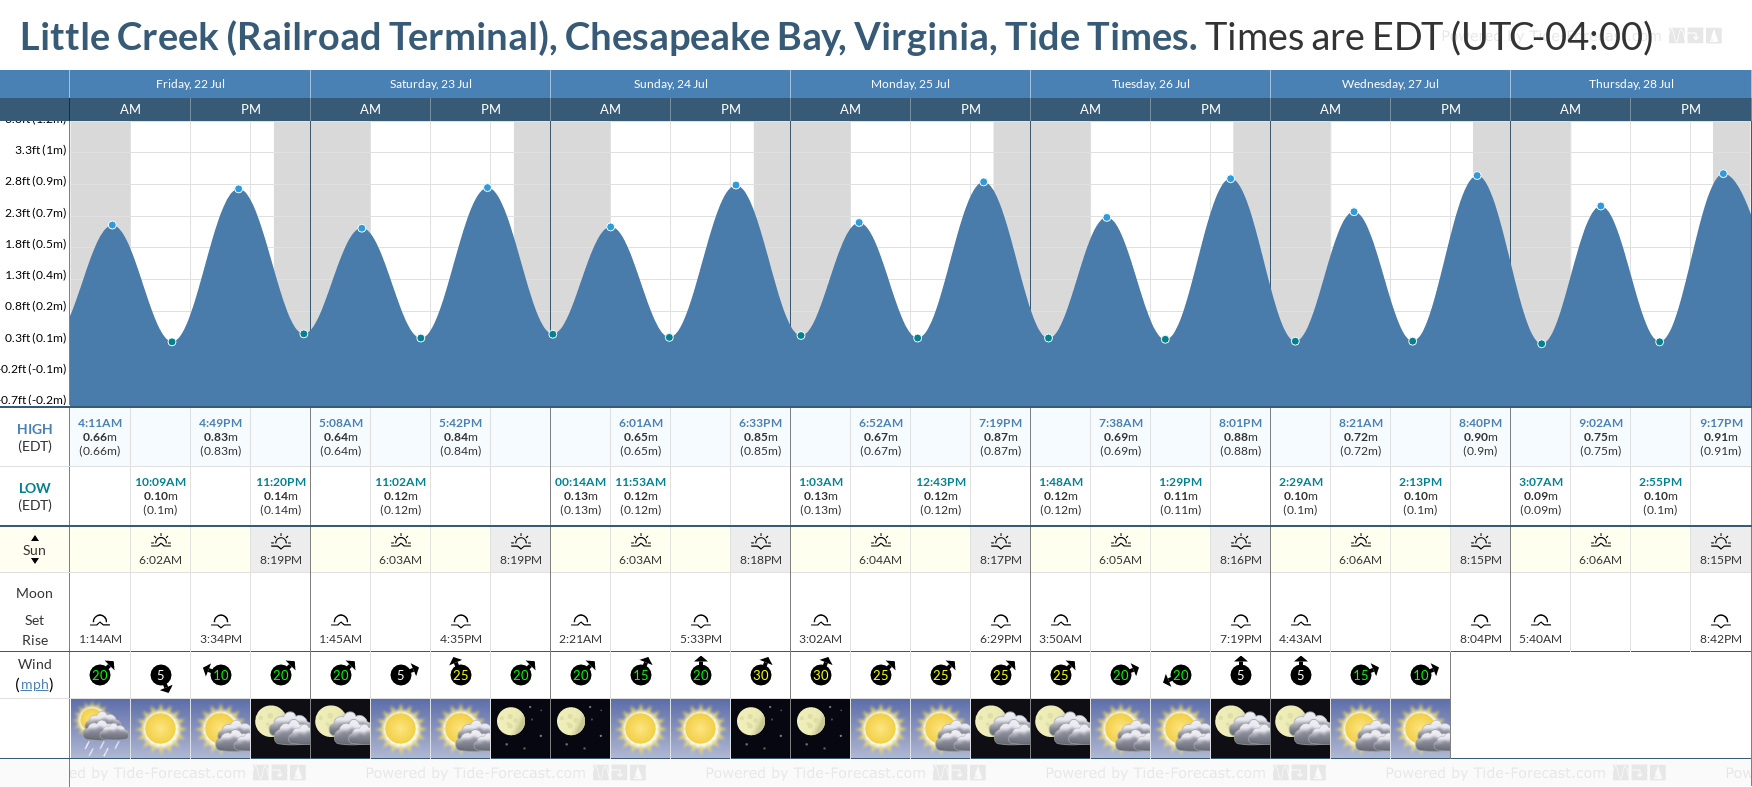 Little Creek (Railroad Terminal), Chesapeake Bay, Virginia Tide Chart including high and low tide tide times for the next 7 days